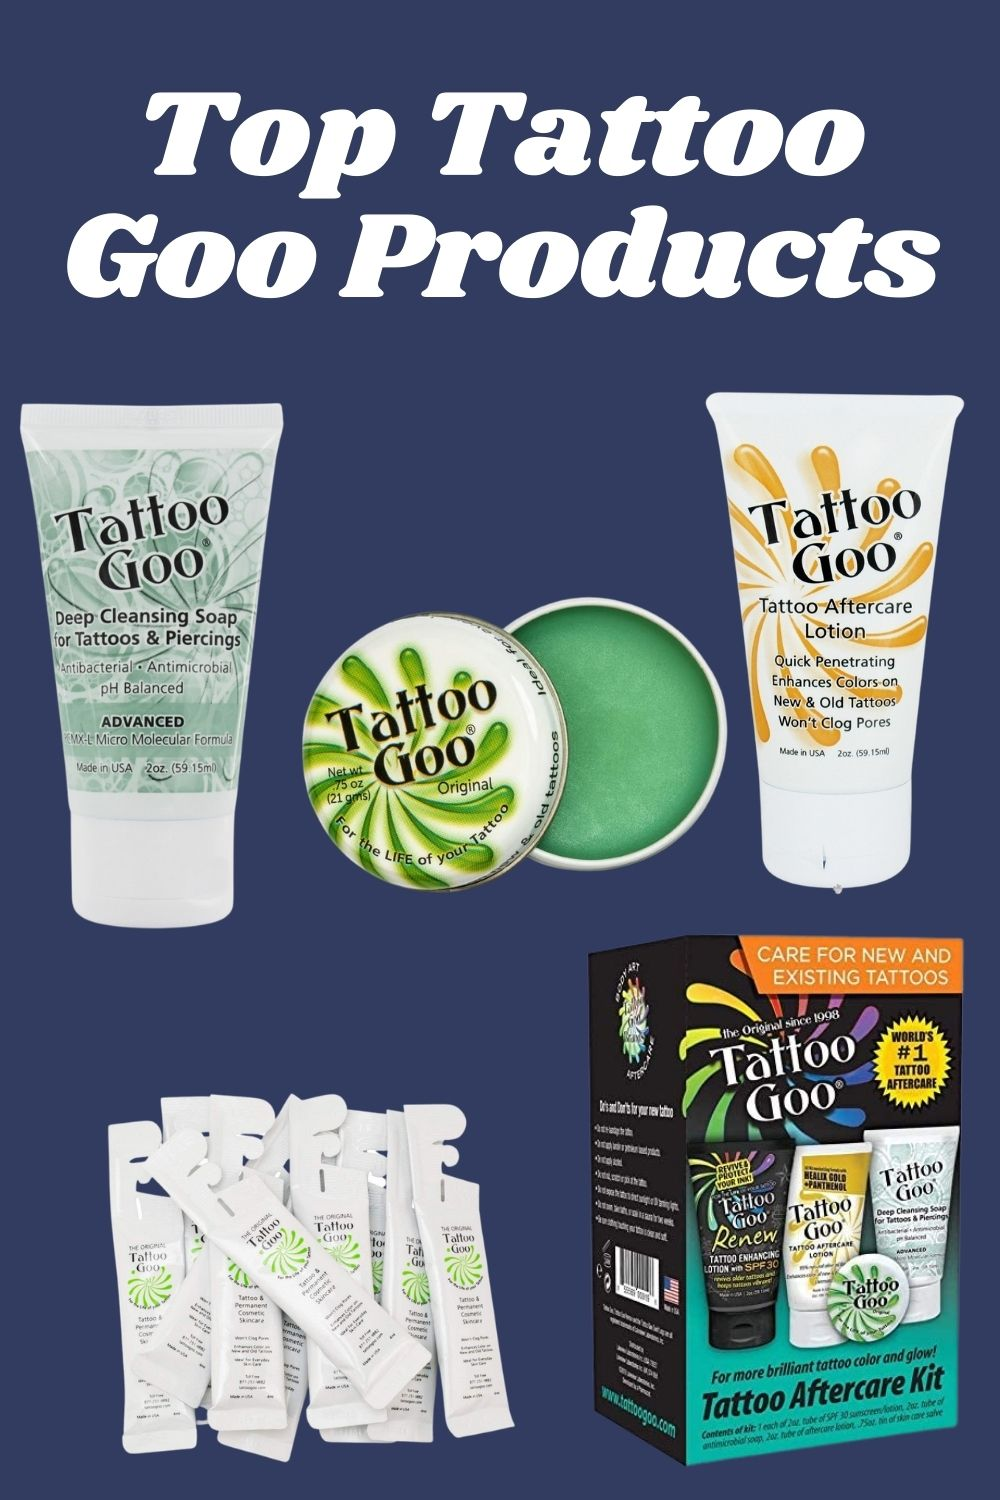 Tattoo Goo Products